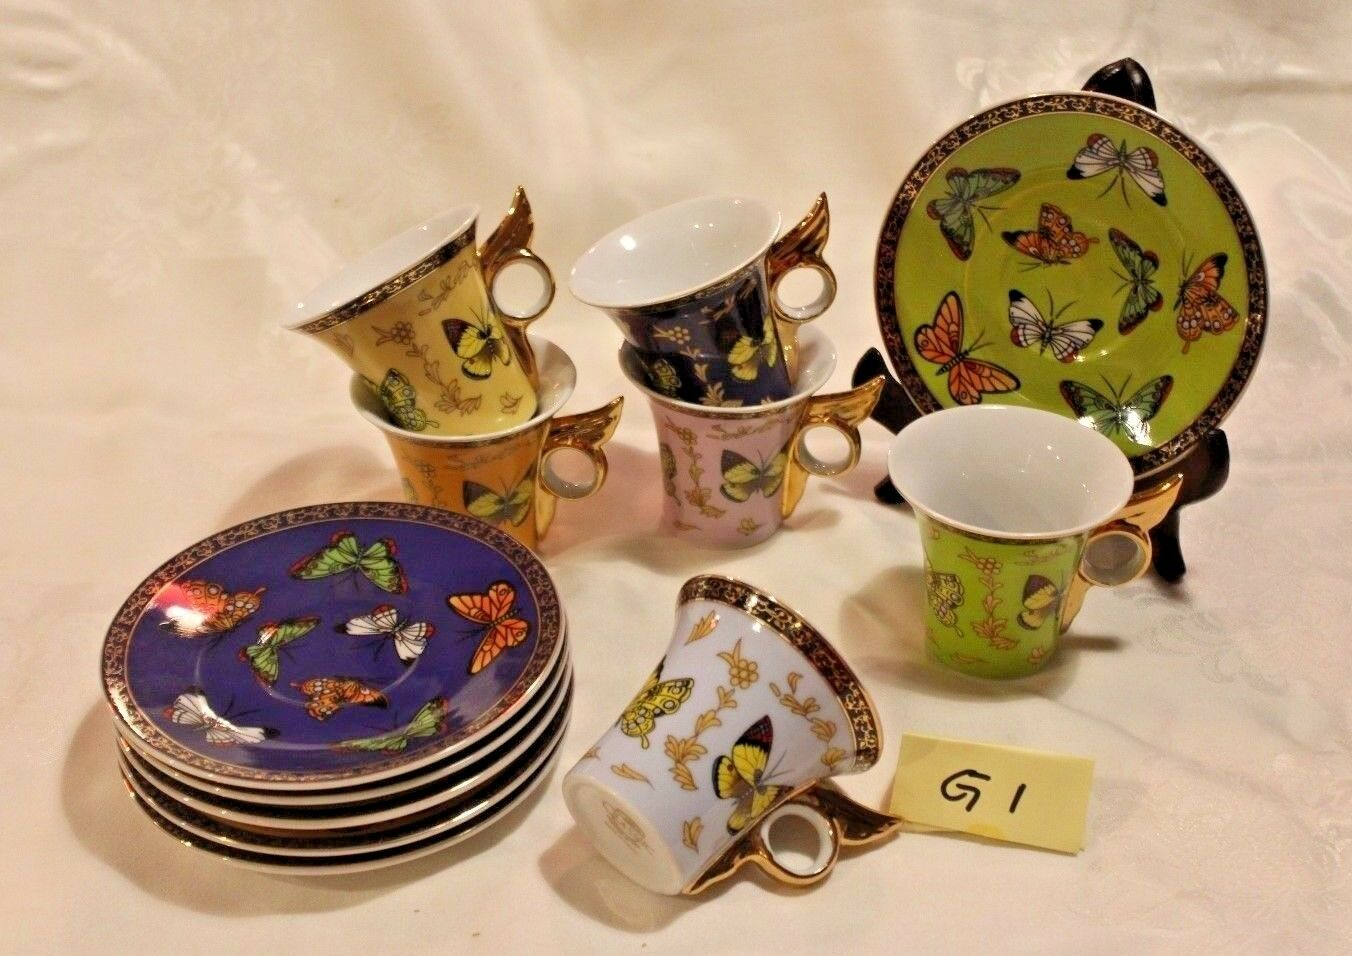 SET OF 5 CLASSIC BUTTERFLY DESIGN CUP AND SAUCER (G1)